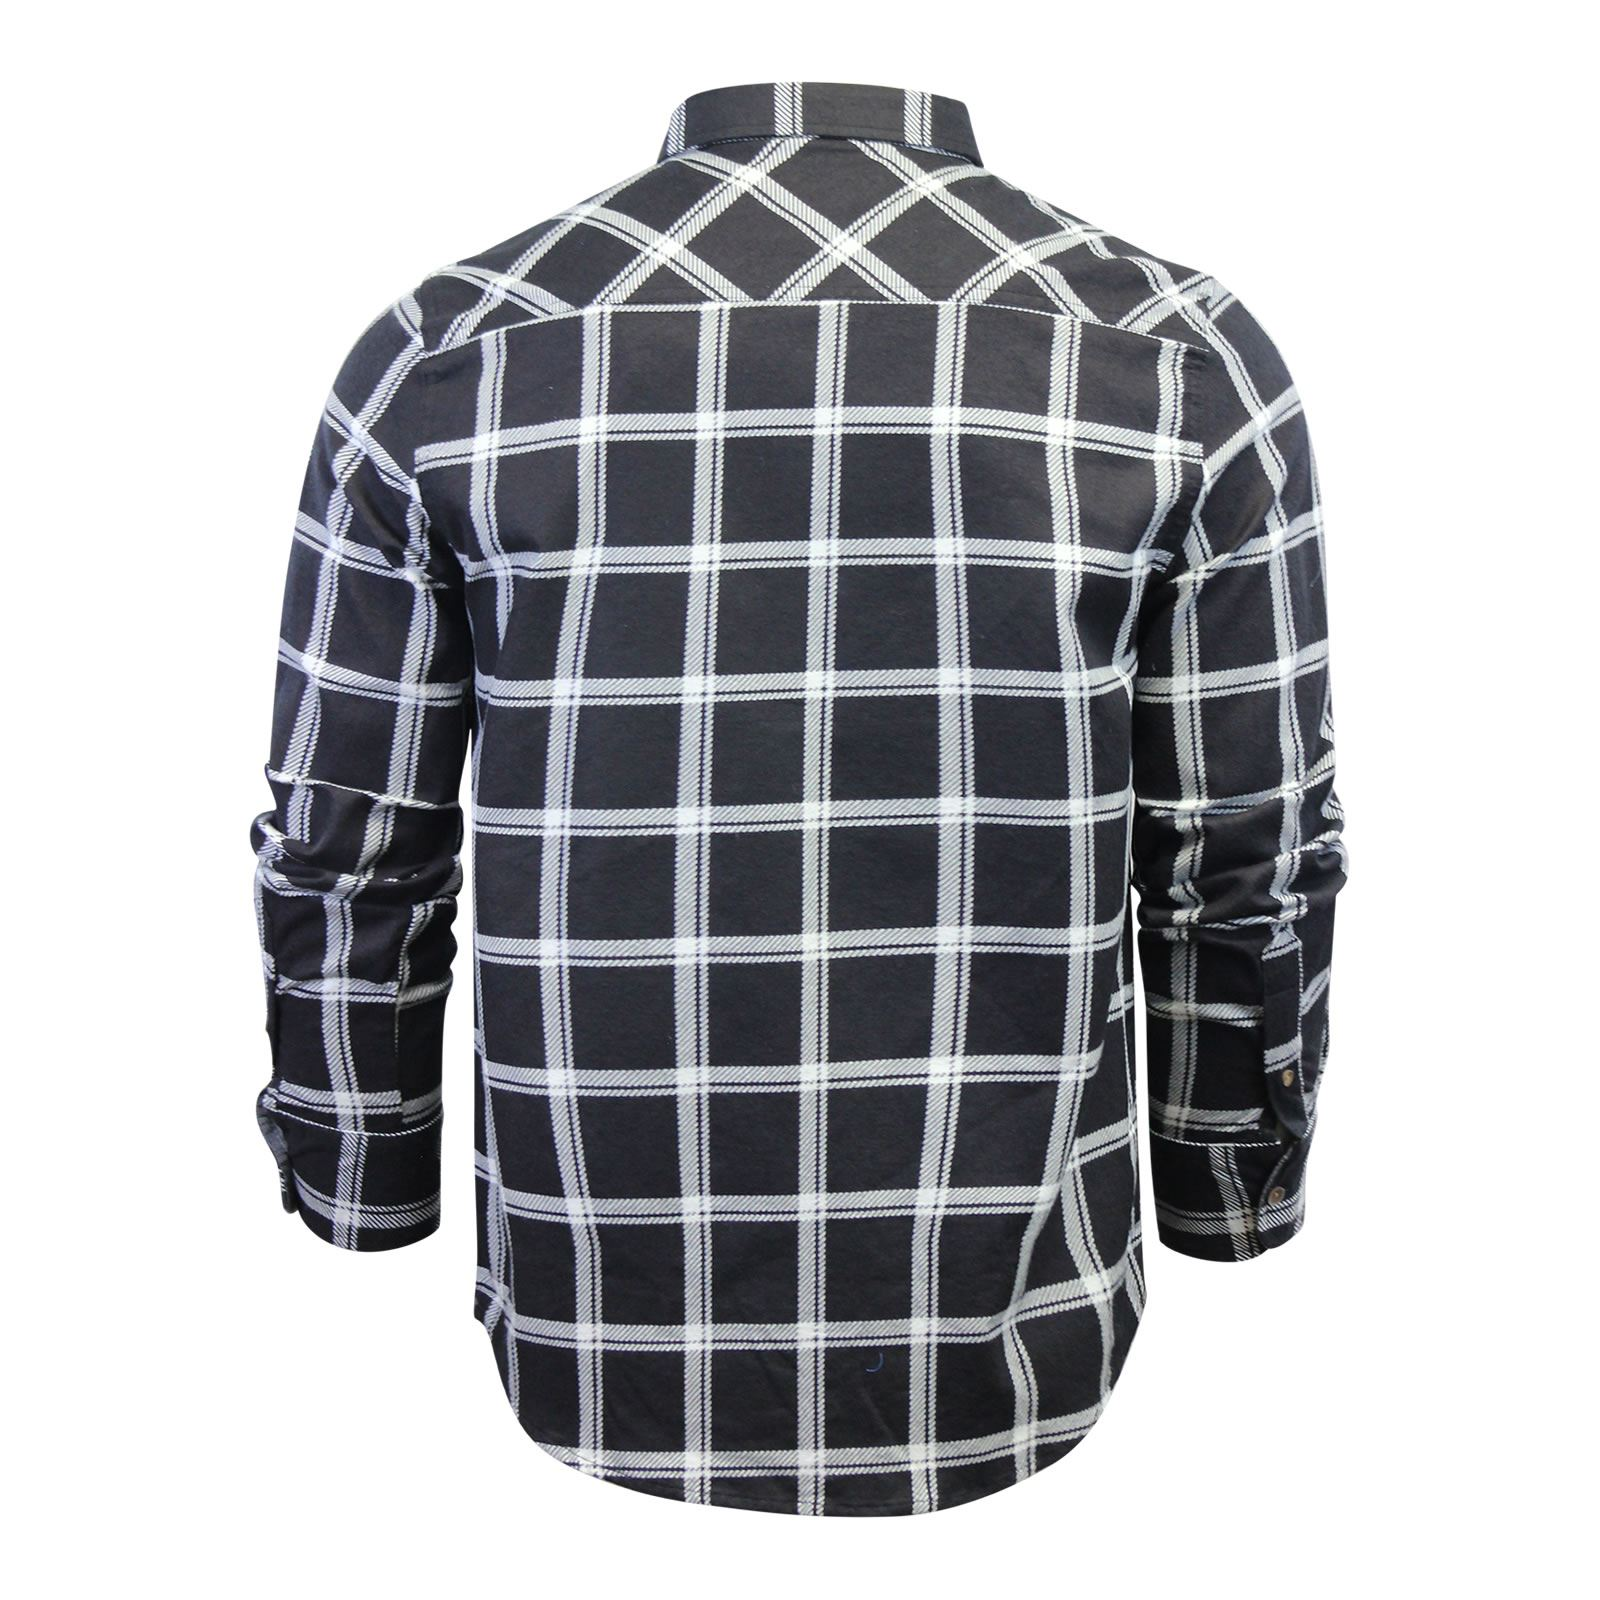 Mens-Check-Shirt-Brave-Soul-Flannel-Brushed-Cotton-Long-Sleeve-Casual-Top thumbnail 99